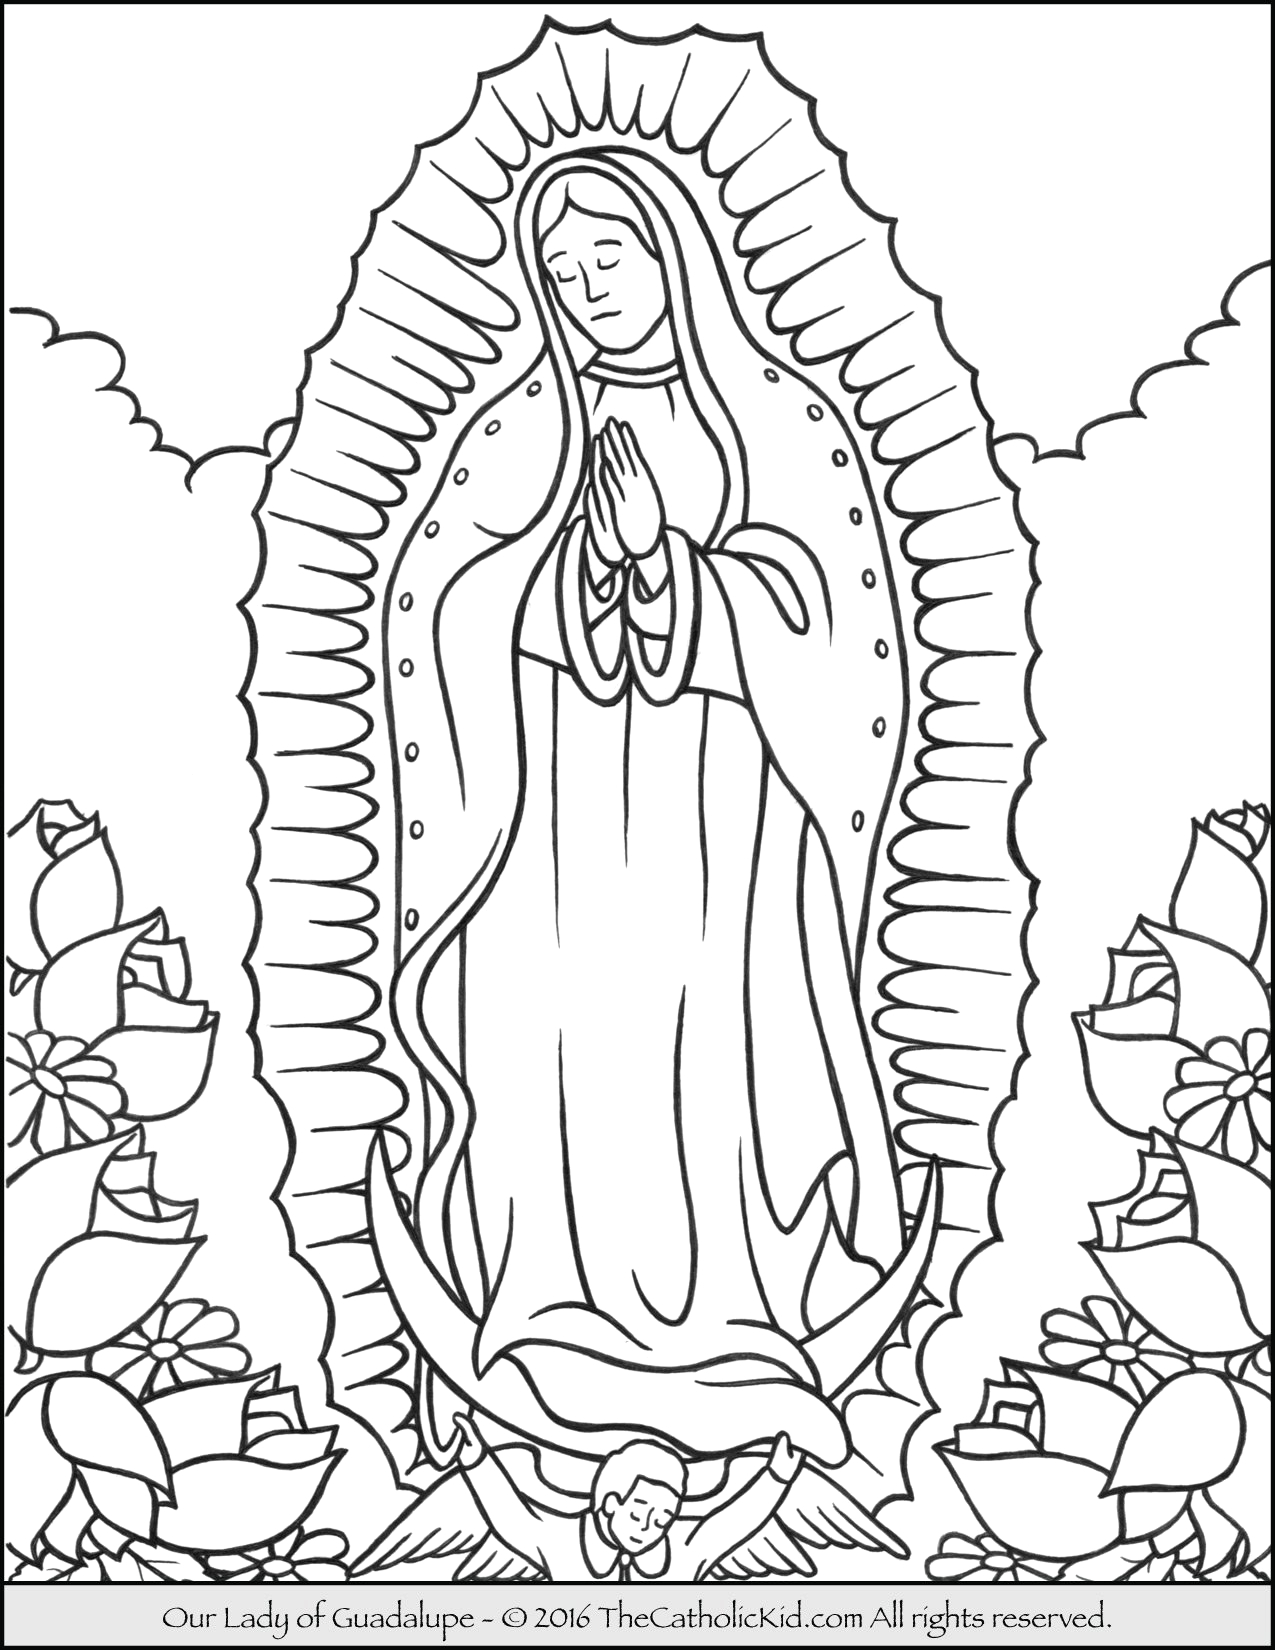 Free Printable Coloring Pages Of Our Lady Of Guadalupe Our Lady Of Guadalupe Coloring Page thecatholickid